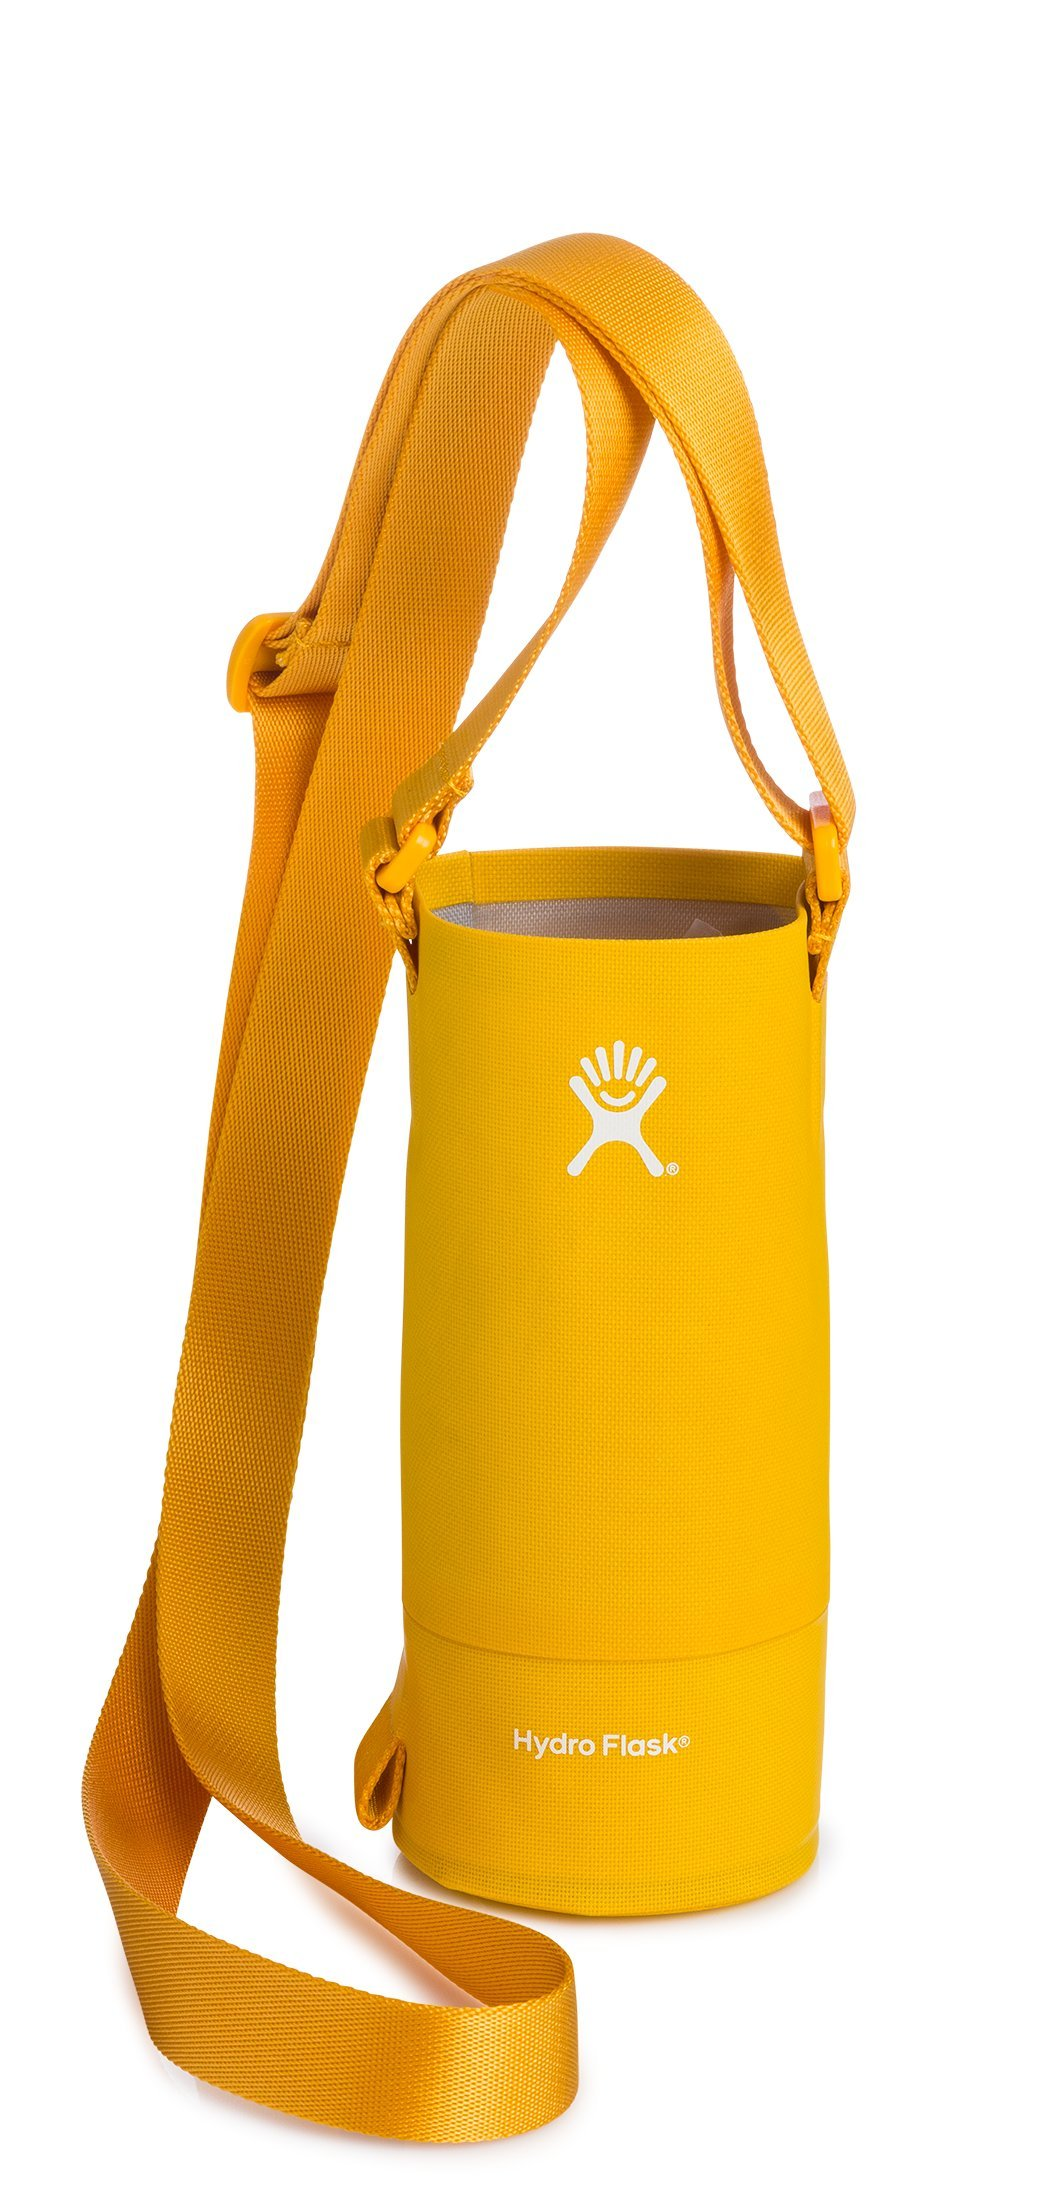 Hydro Flask Small Soft Sided Nylon Tag Along Water Bottle Sling with Pockets, Golden Rod (Fits 12 oz, 18 oz, 21 oz, and 24 oz Bottles)